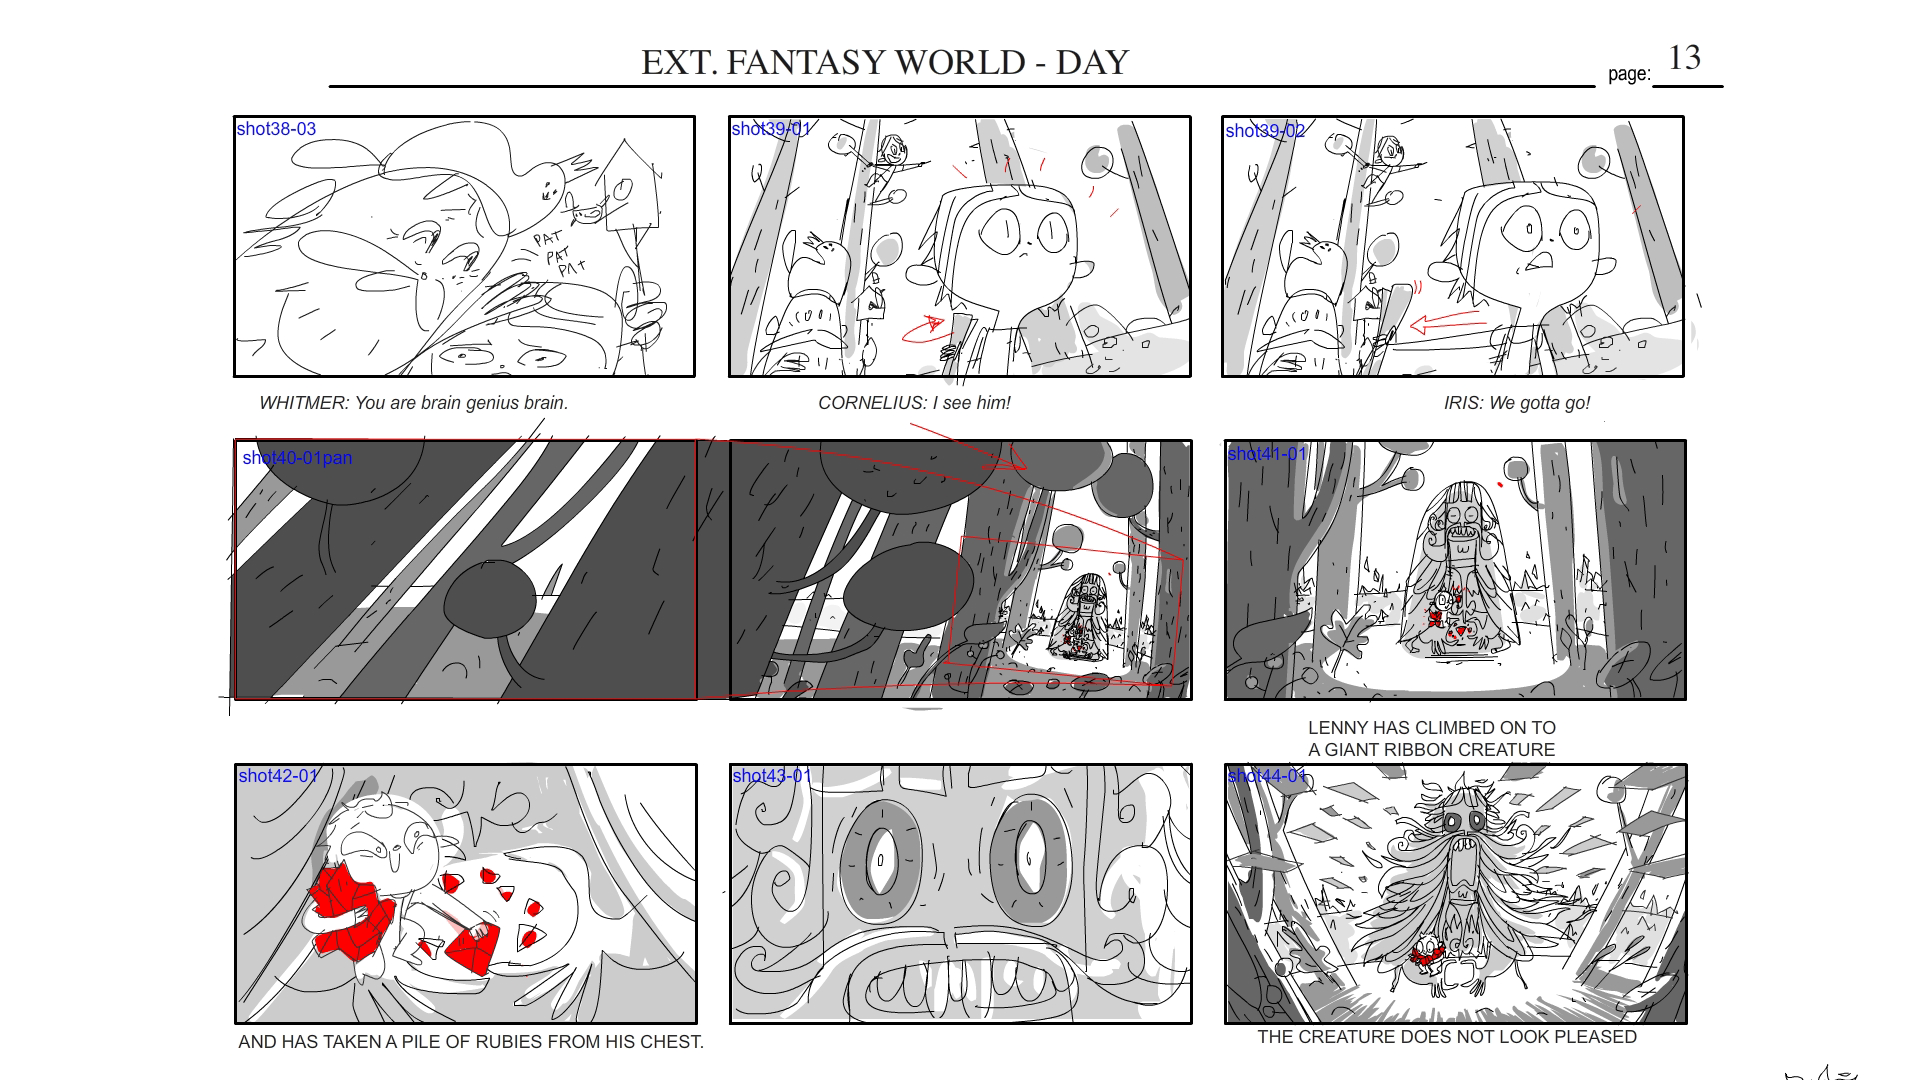 MikeOwens_STORYBOARDS_Iris_Page_13.png